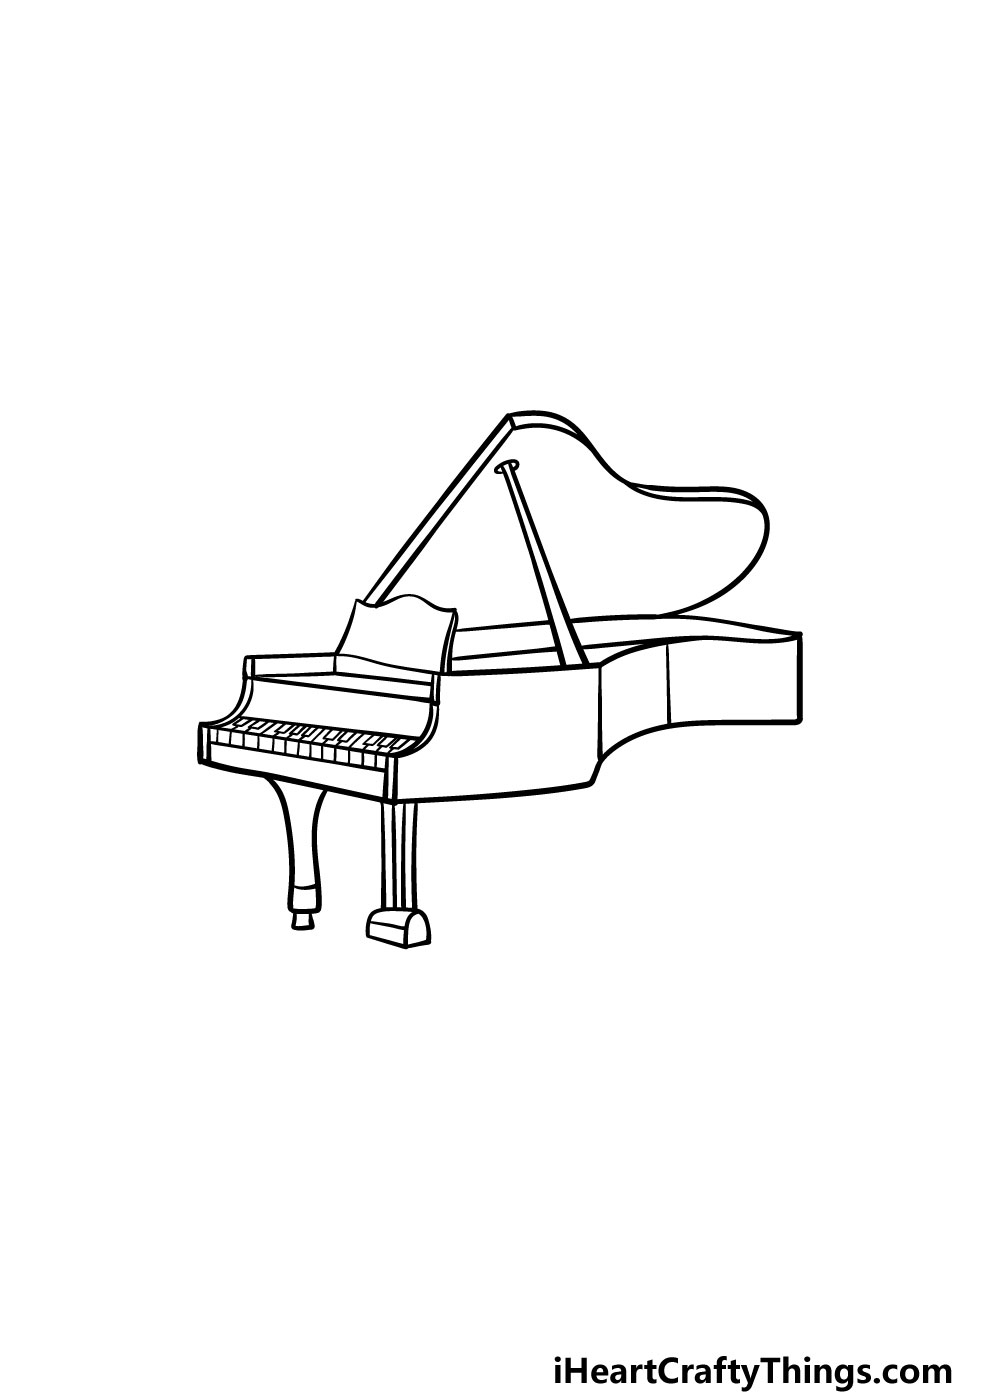 drawing a piano step 4